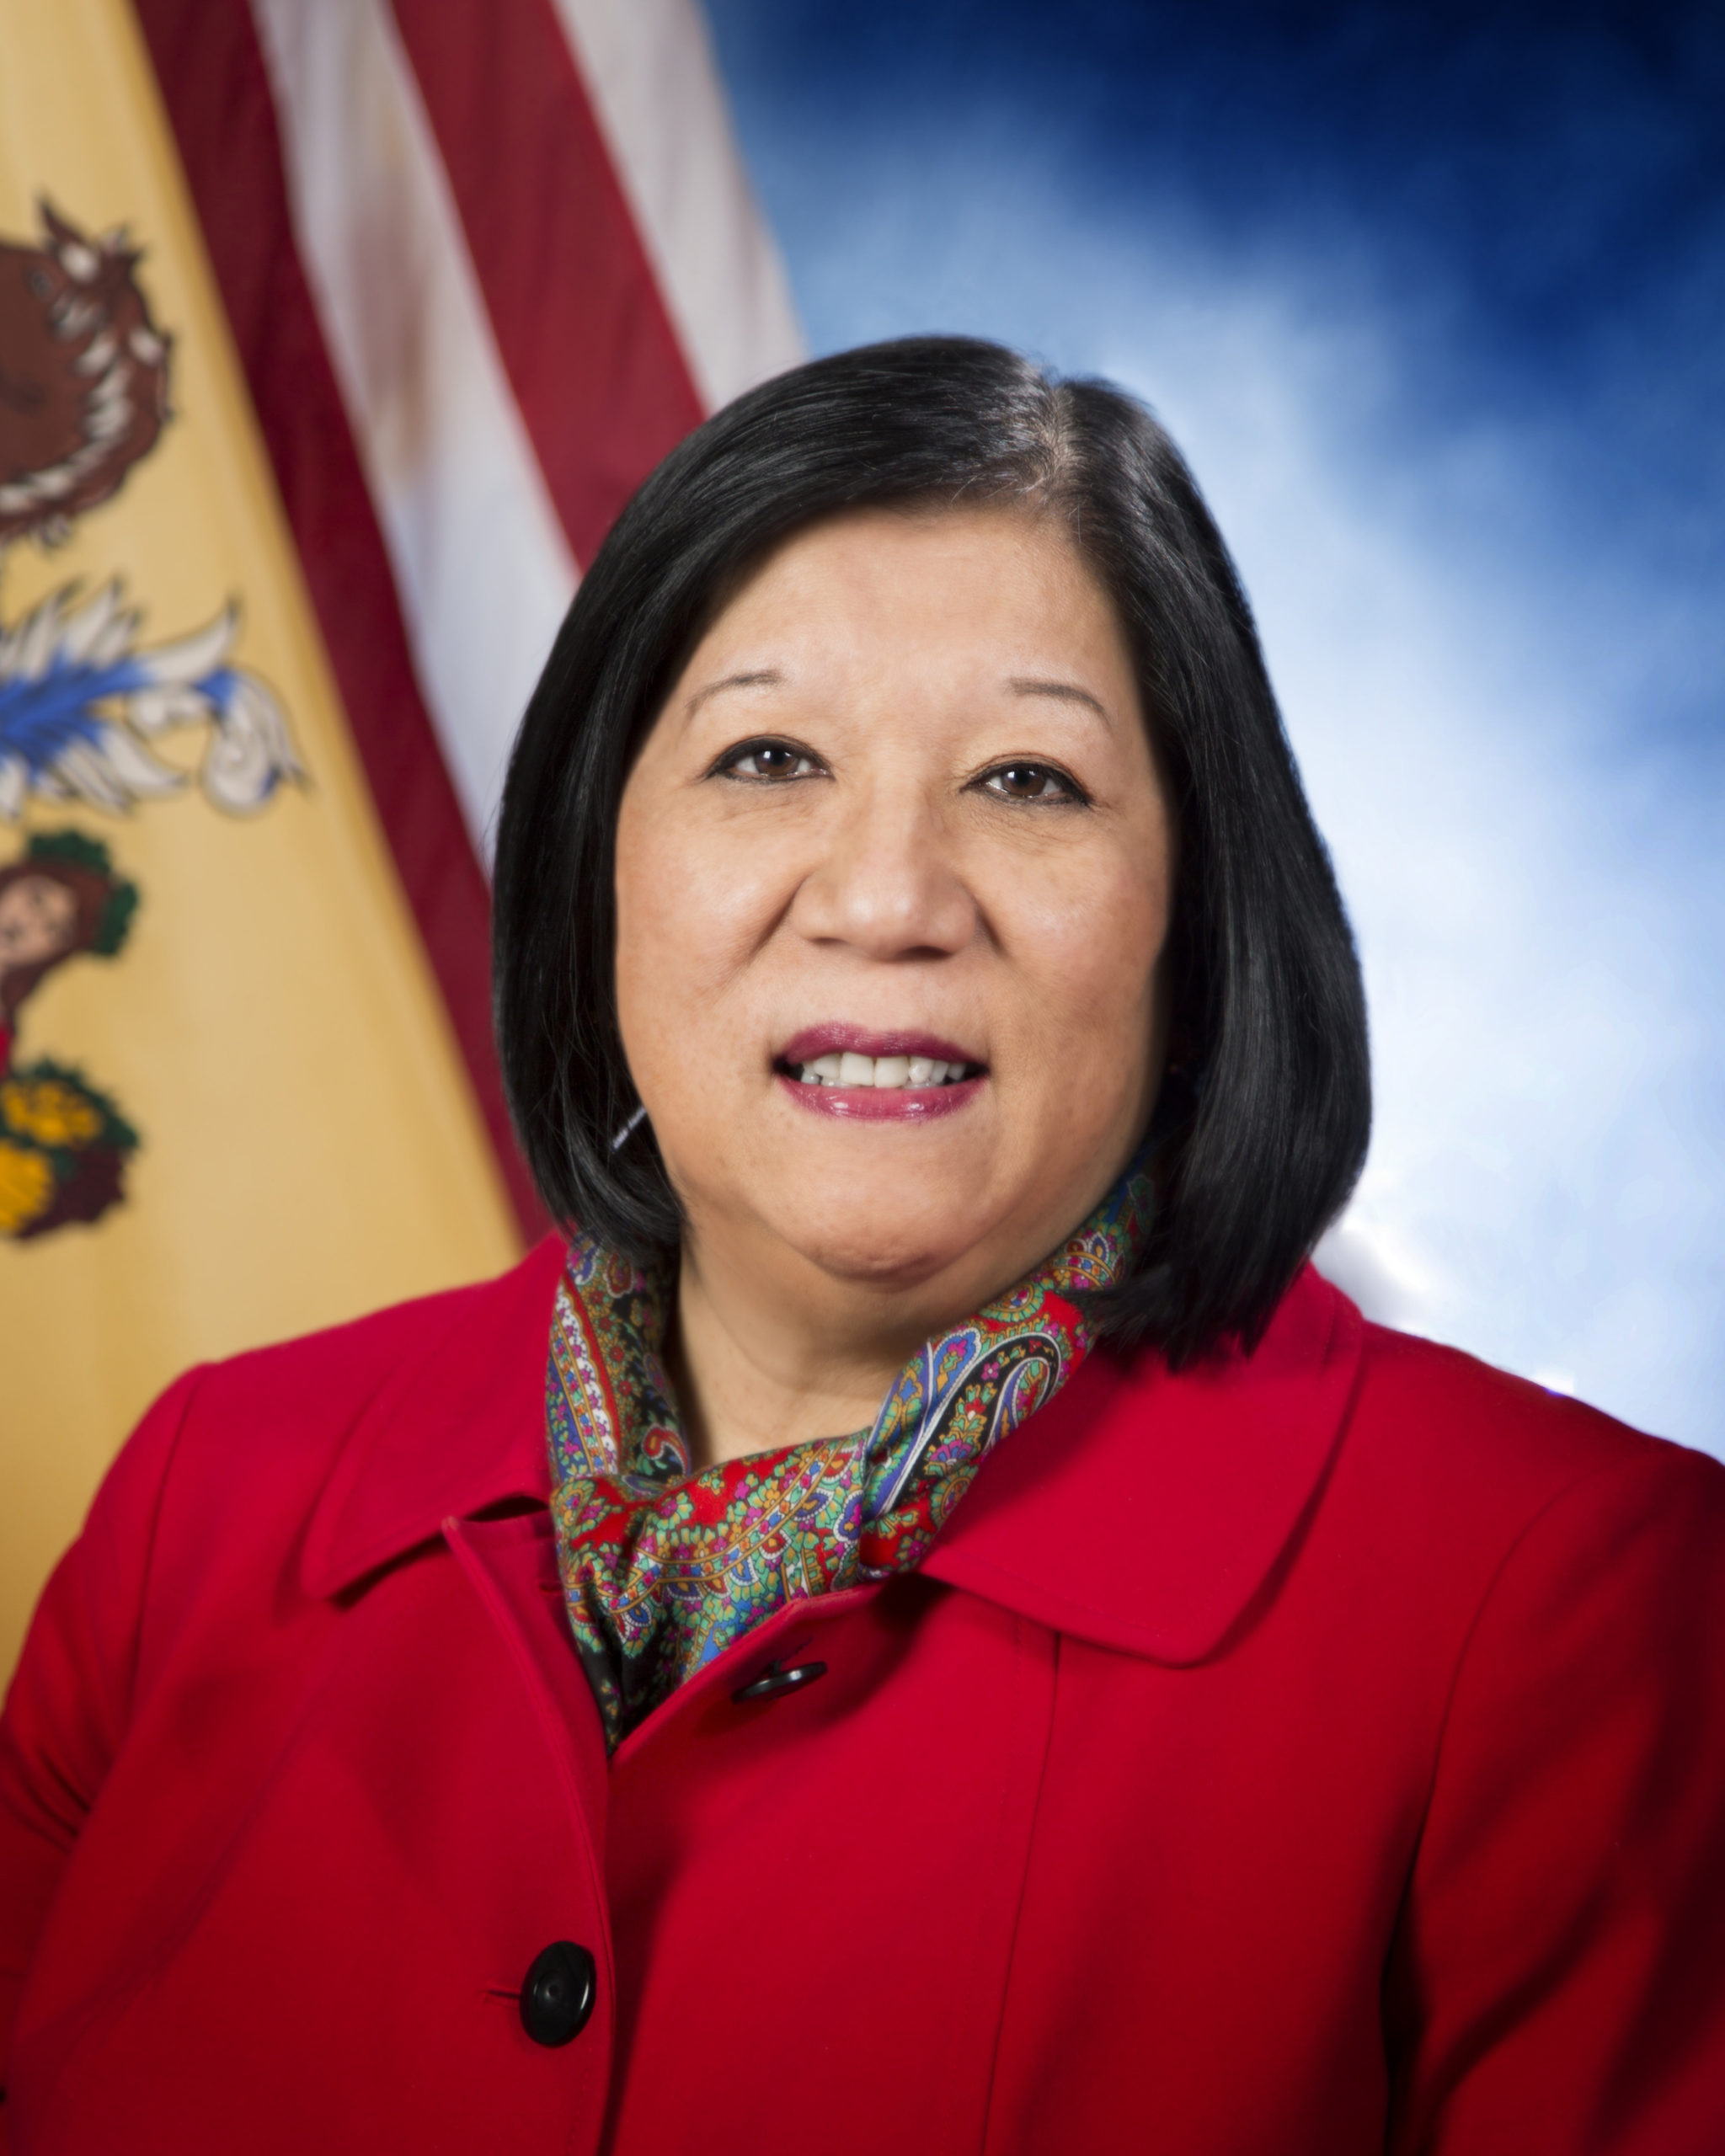 "</p> <h3 style=""color:white;"">Lora Fong</h3> <h5 style=""color:white;font-style:italic;"">Chief Diversity Officer</h5> <p>Lora Fong is an Assistant Attorney General and serves as the Chief Diversity Officer for the Department of Law and Public Safety. Before joining the Department in 2016, Lora counselled and advised large corporate clients, including members of the Fortune 500, on diversity and inclusion. She has practiced law since 1991, including as a commercial litigator at various large New Jersey private practice firms, and as in-house counsel in the technology sector, handling transactional, data privacy and intellectual property matters as well as commercial disputes, compliance, and employment-related issues. Lora has been recognized as a Distinguished Leader of the Bar by the New Jersey Law Journal, and is a recent recipient of a Professional Achievement Award from the Asian Pacific American Lawyers Association of New Jersey. She previously served as a Trustee of the New Jersey State Bar Association and co-chaired its Diversity Committee, and currently, is a Director of the New Jersey Women Lawyers Association. Prior to joining OAG, Lora served on the Rutgers Board of Governors as well as on the Rutgers Board of Trustees. She is also a past member of the New Jersey State Advisory Committee to the United States Commission on Civil Rights. Lora earned a B.A. in Political Science from Douglass College at Rutgers University and recieved her law degreeand from Rutgers University, School of Law in Newark.</p> <p>"